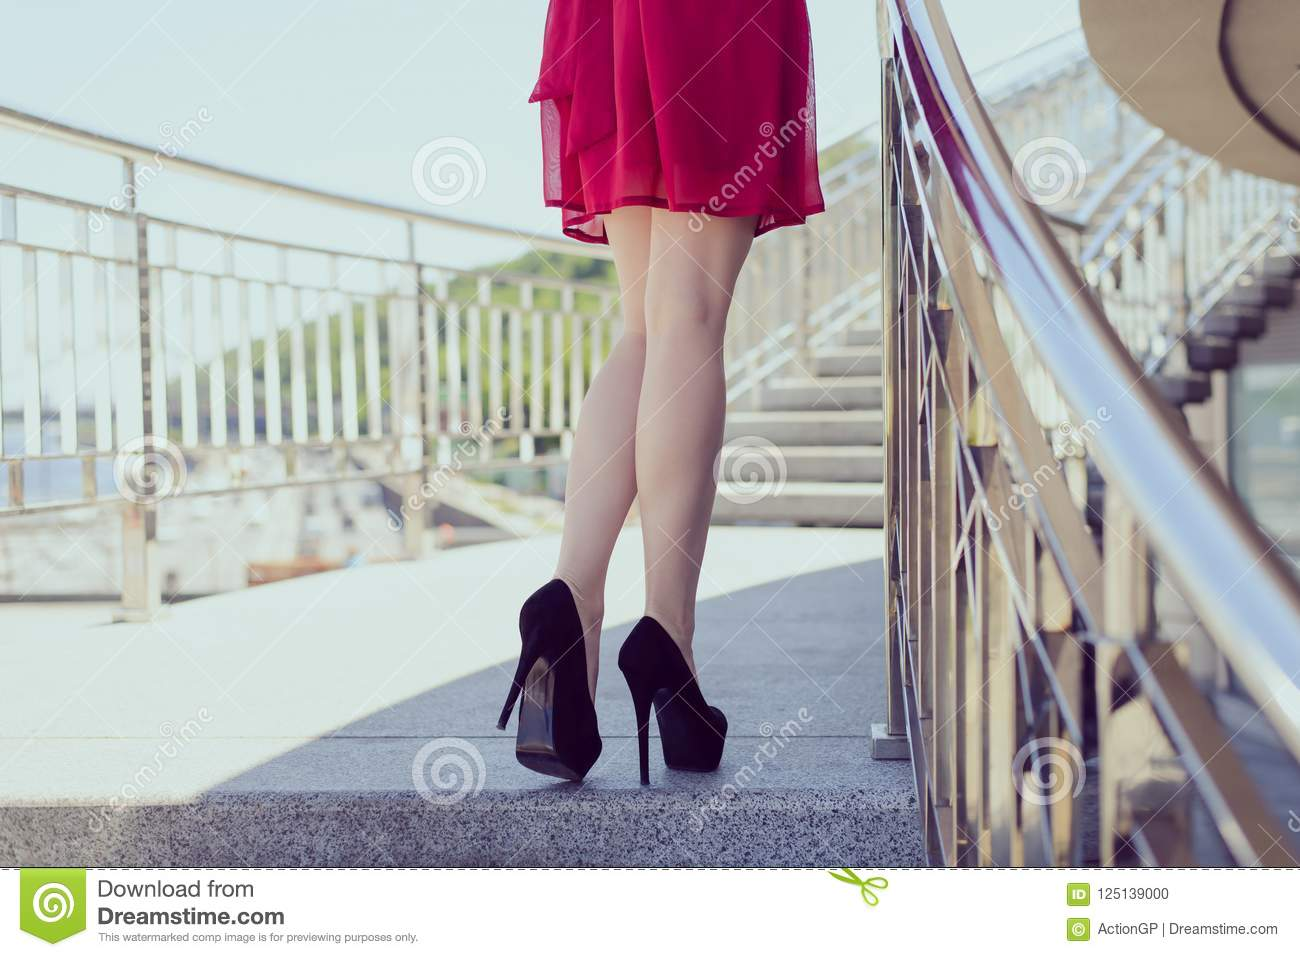 Side walk people person buttocks take go run posing concept. Rear back behind close up view photo of sexual tempting seductive